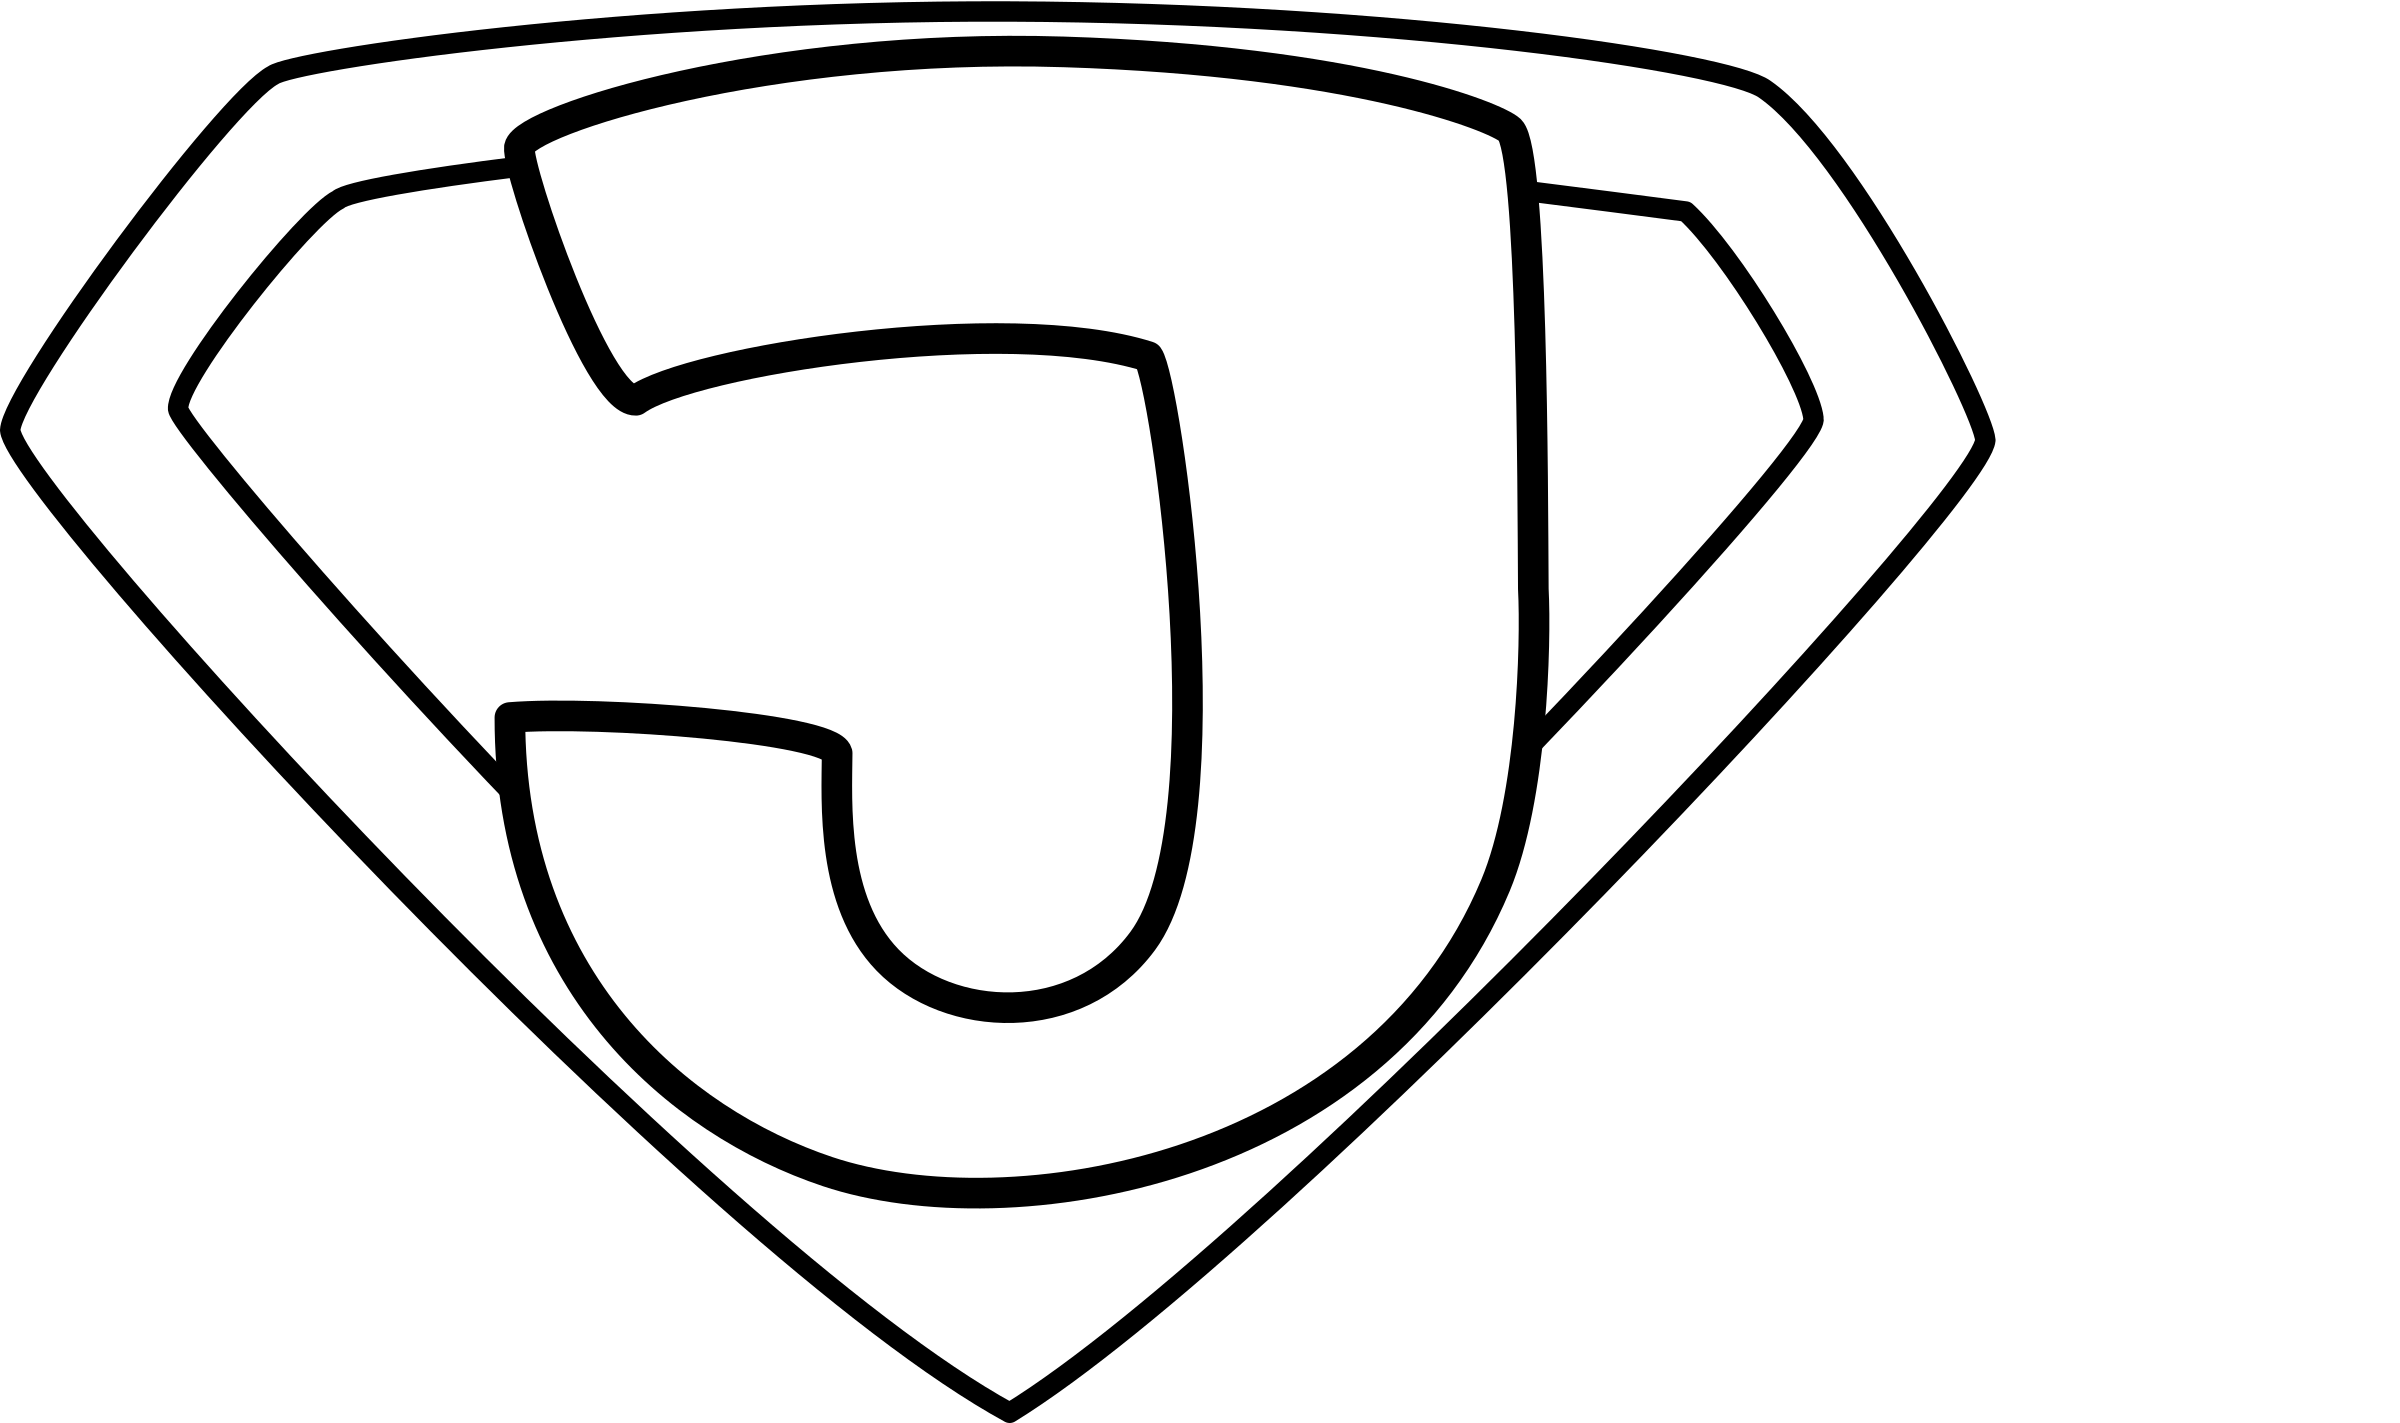 Super Jesus Enhanced Outline by rygle